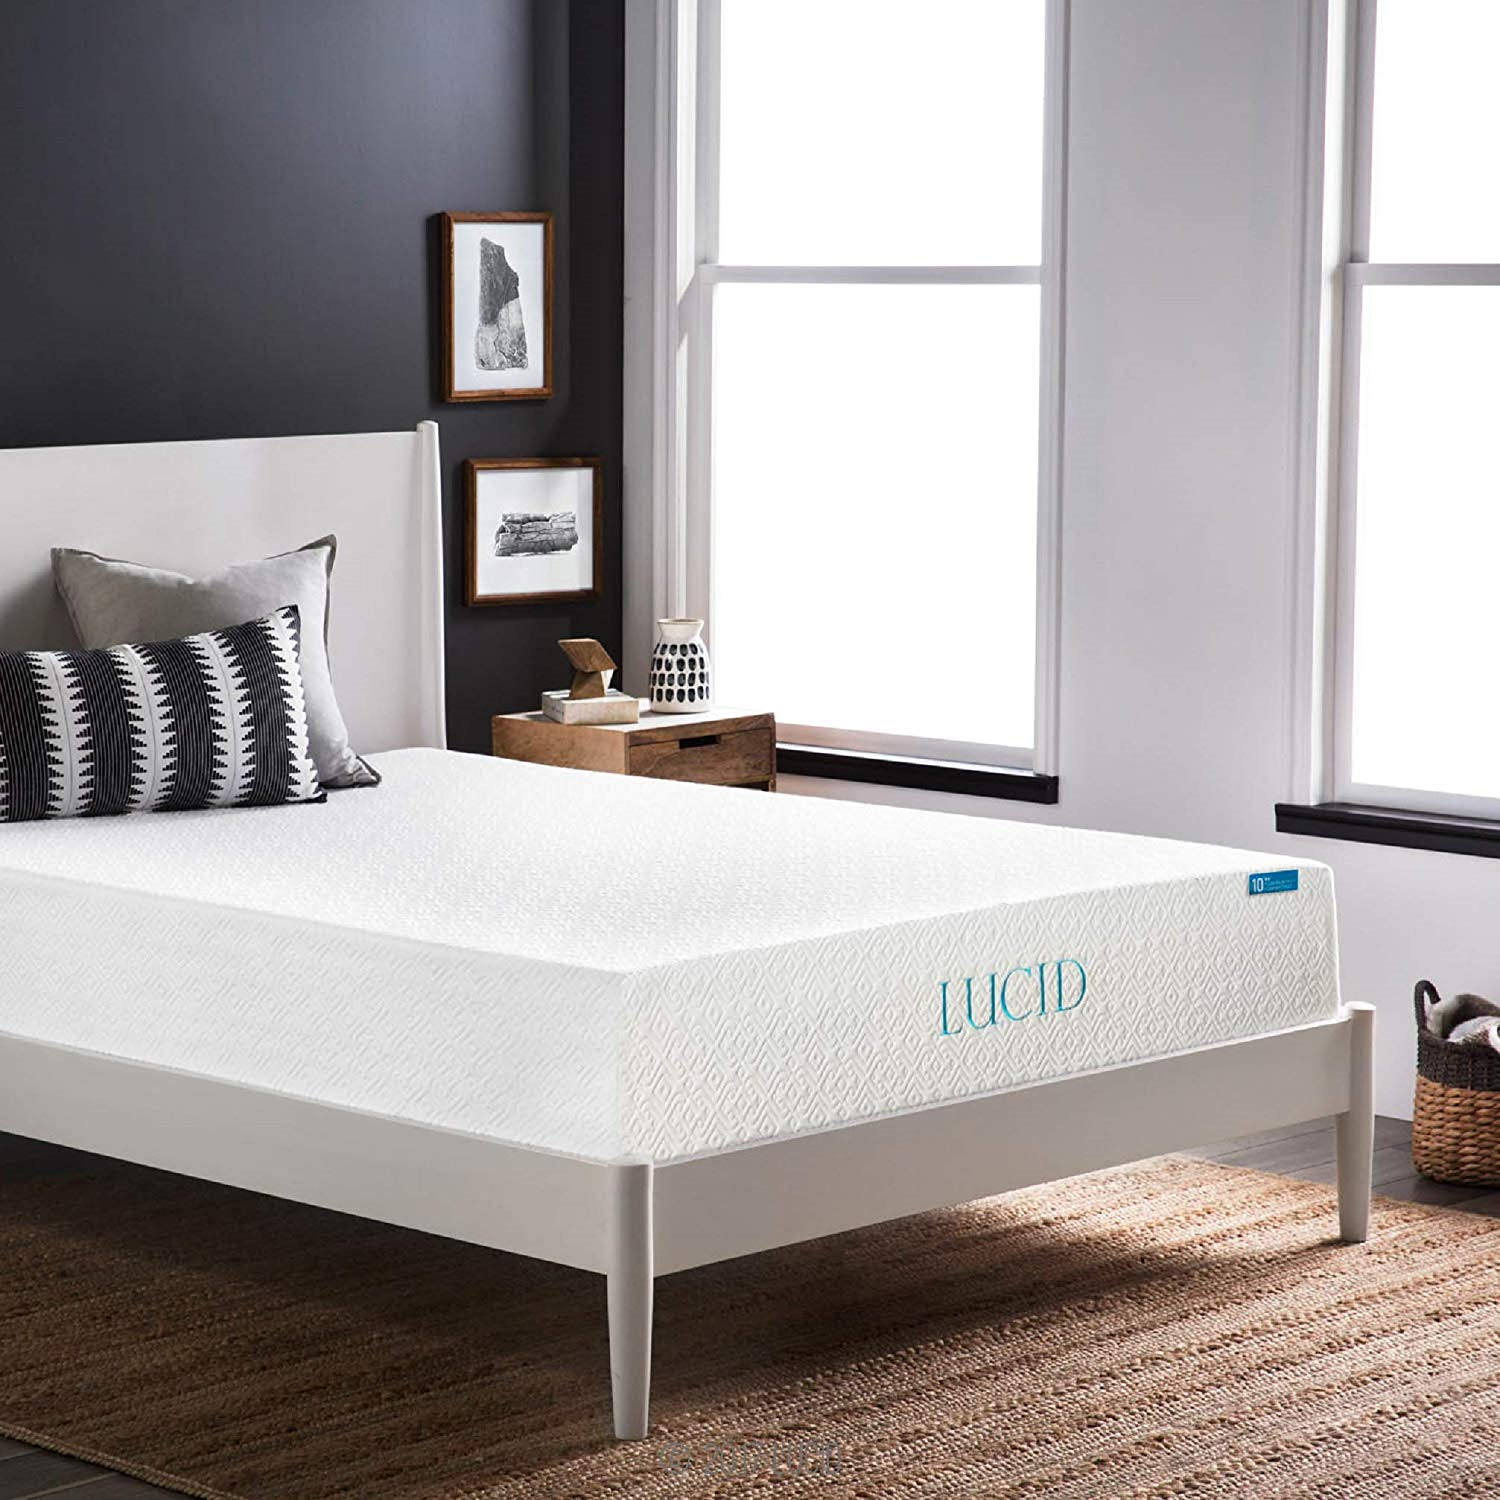 LUCID Best Mattress Under $500 Review by www.snoremagazine.com